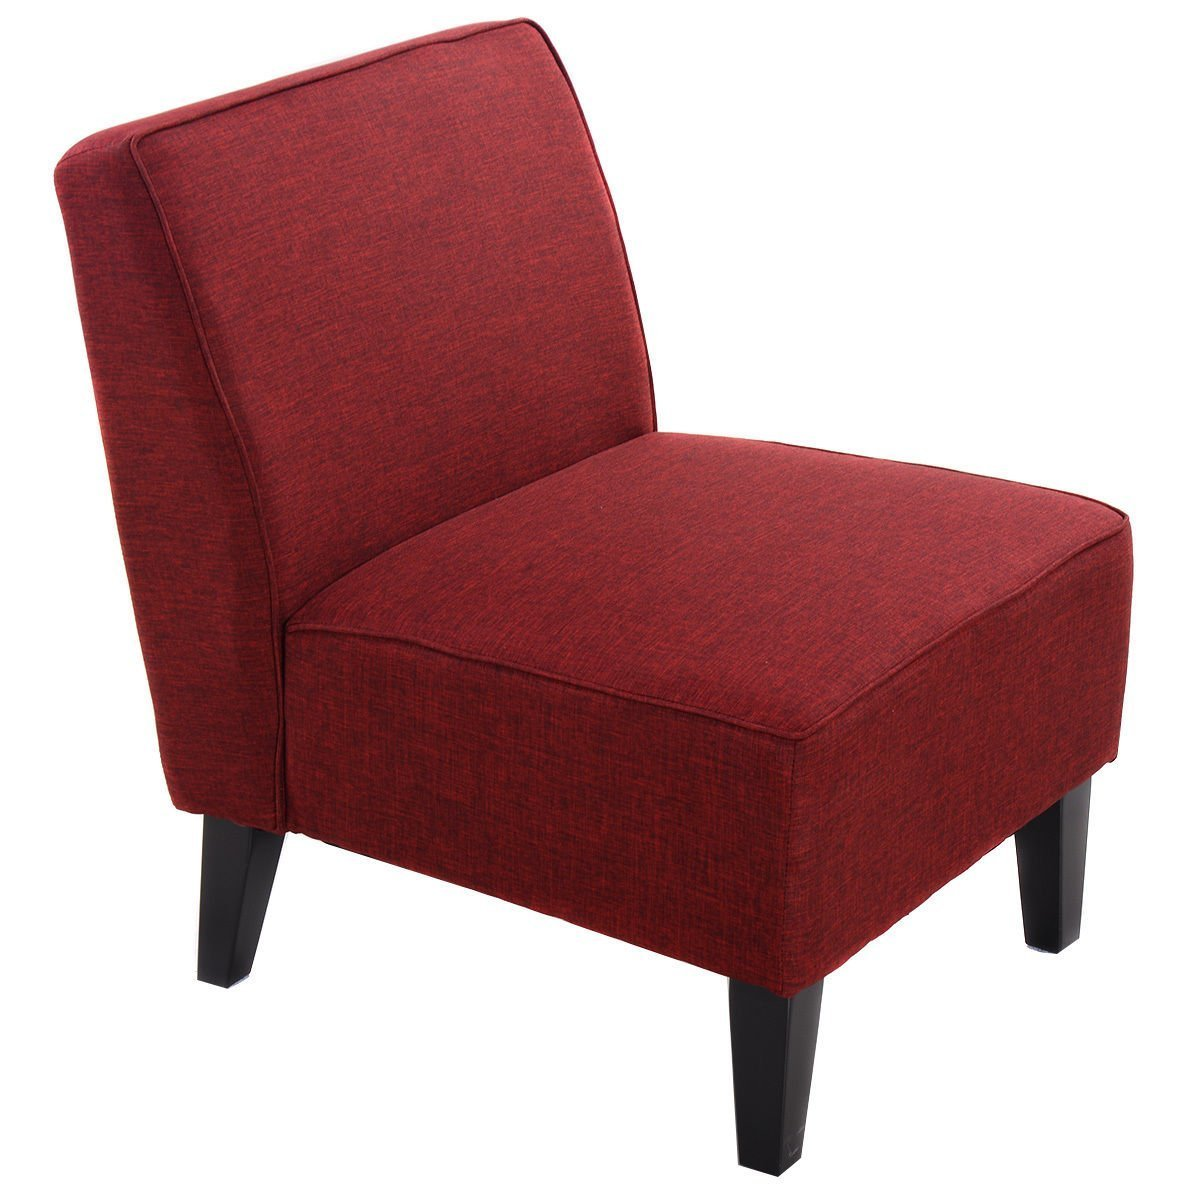 Accent Chairs For Living Room Red Accent Chairs For Living Room Home Furniture Design